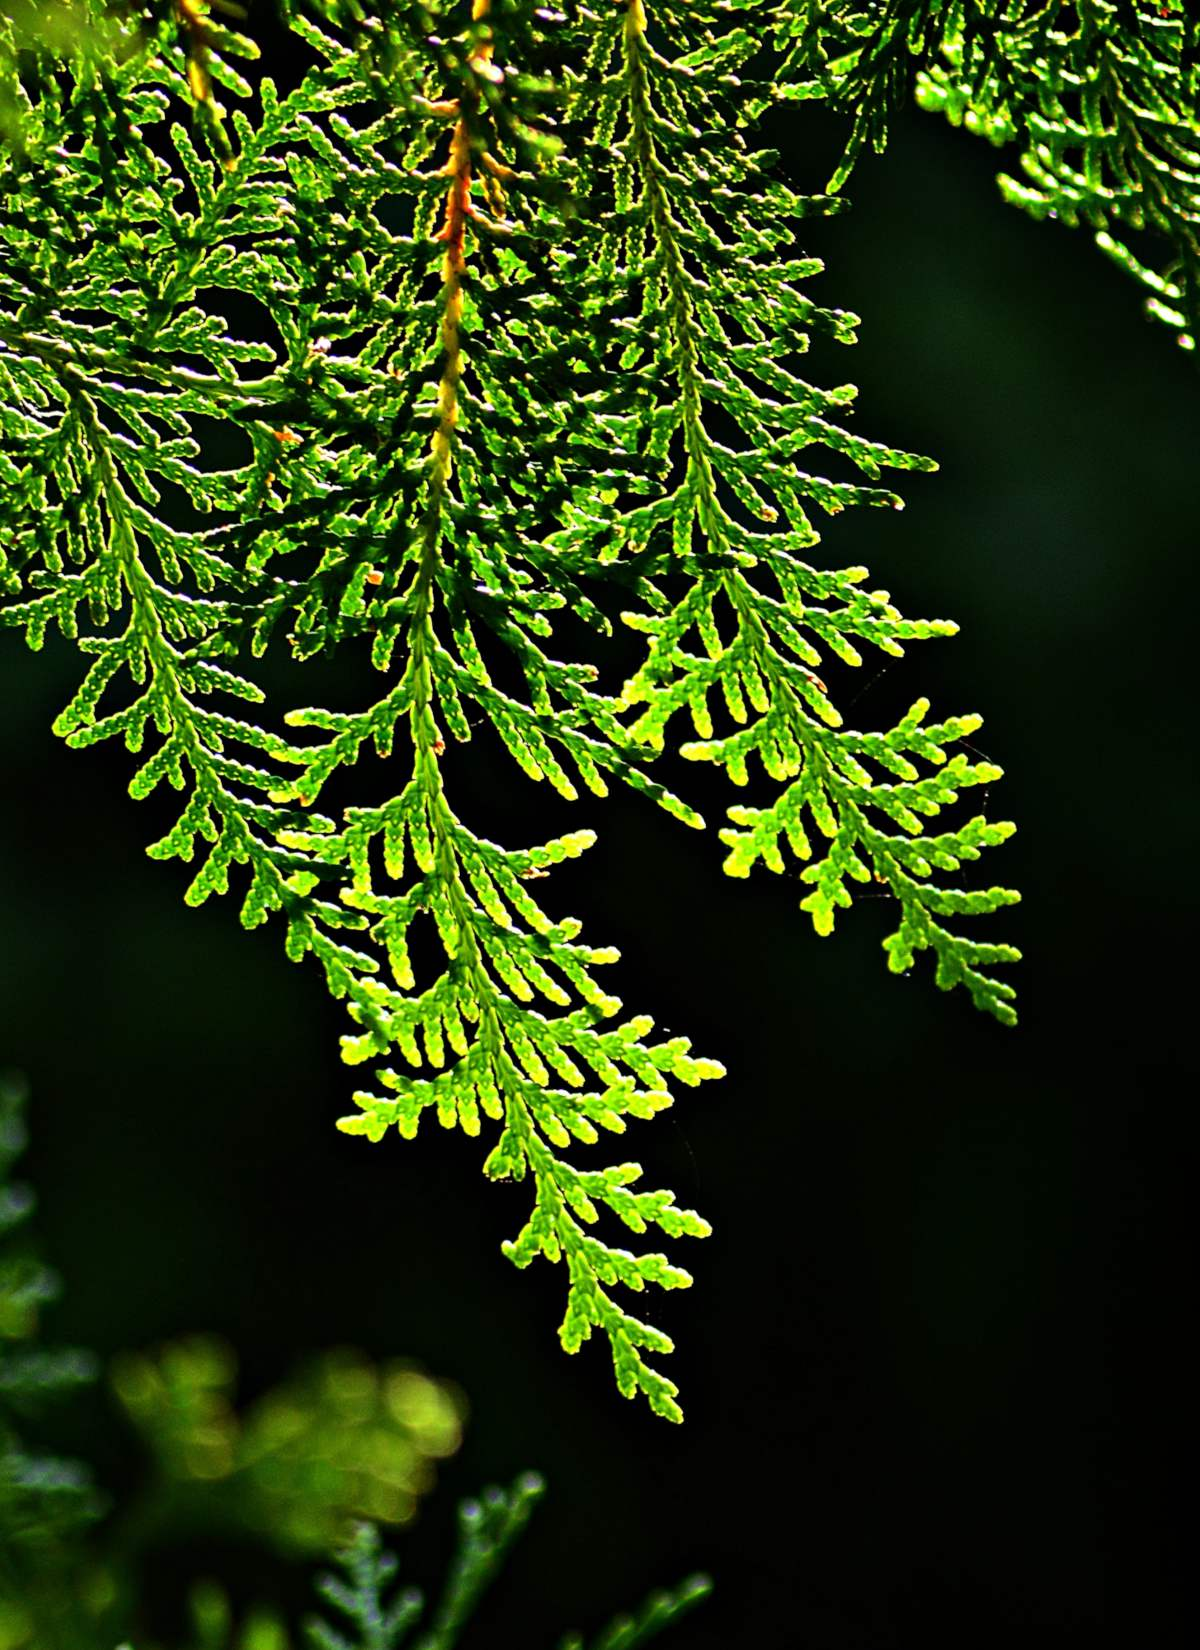 Backlit branch of thuja against a black background